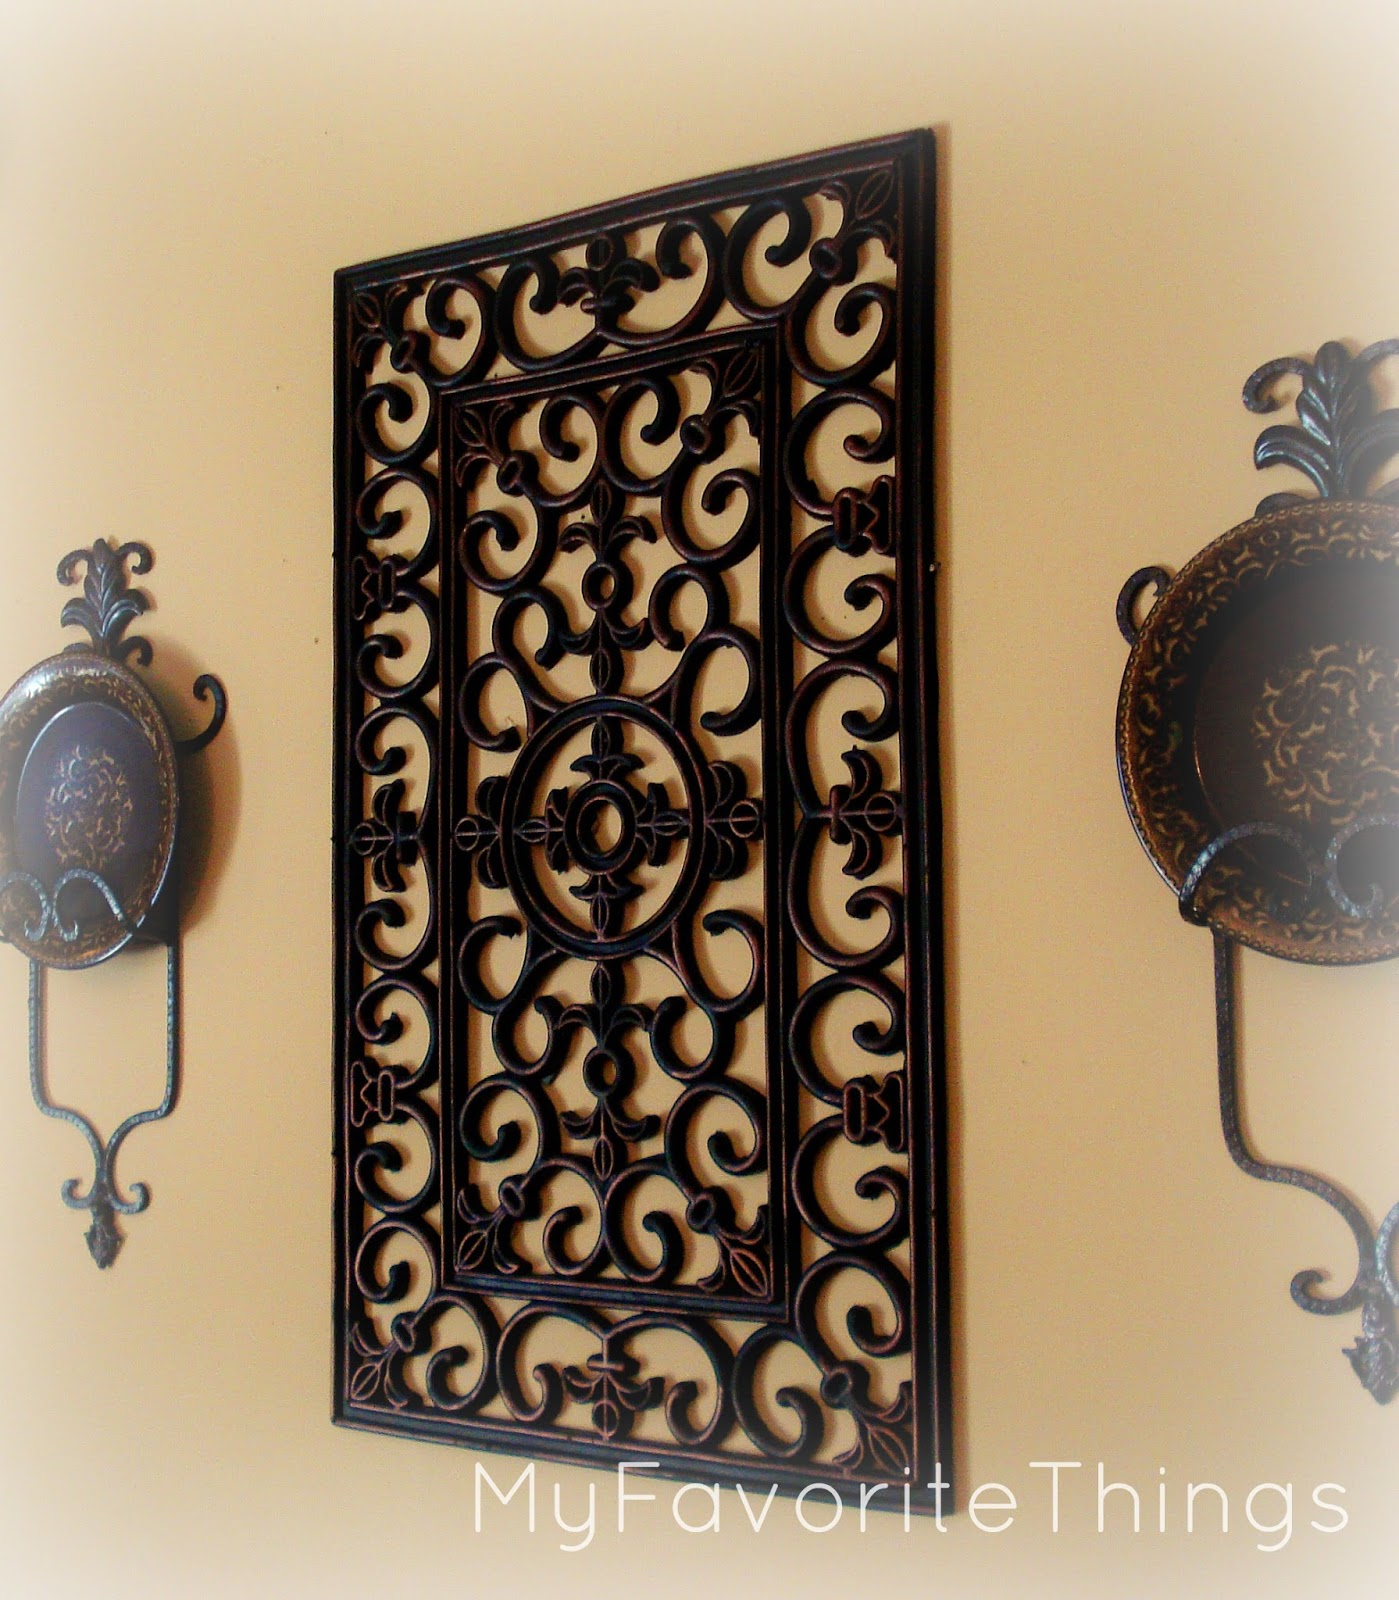 My favorite things wrought iron wall art for Iron accents promo code